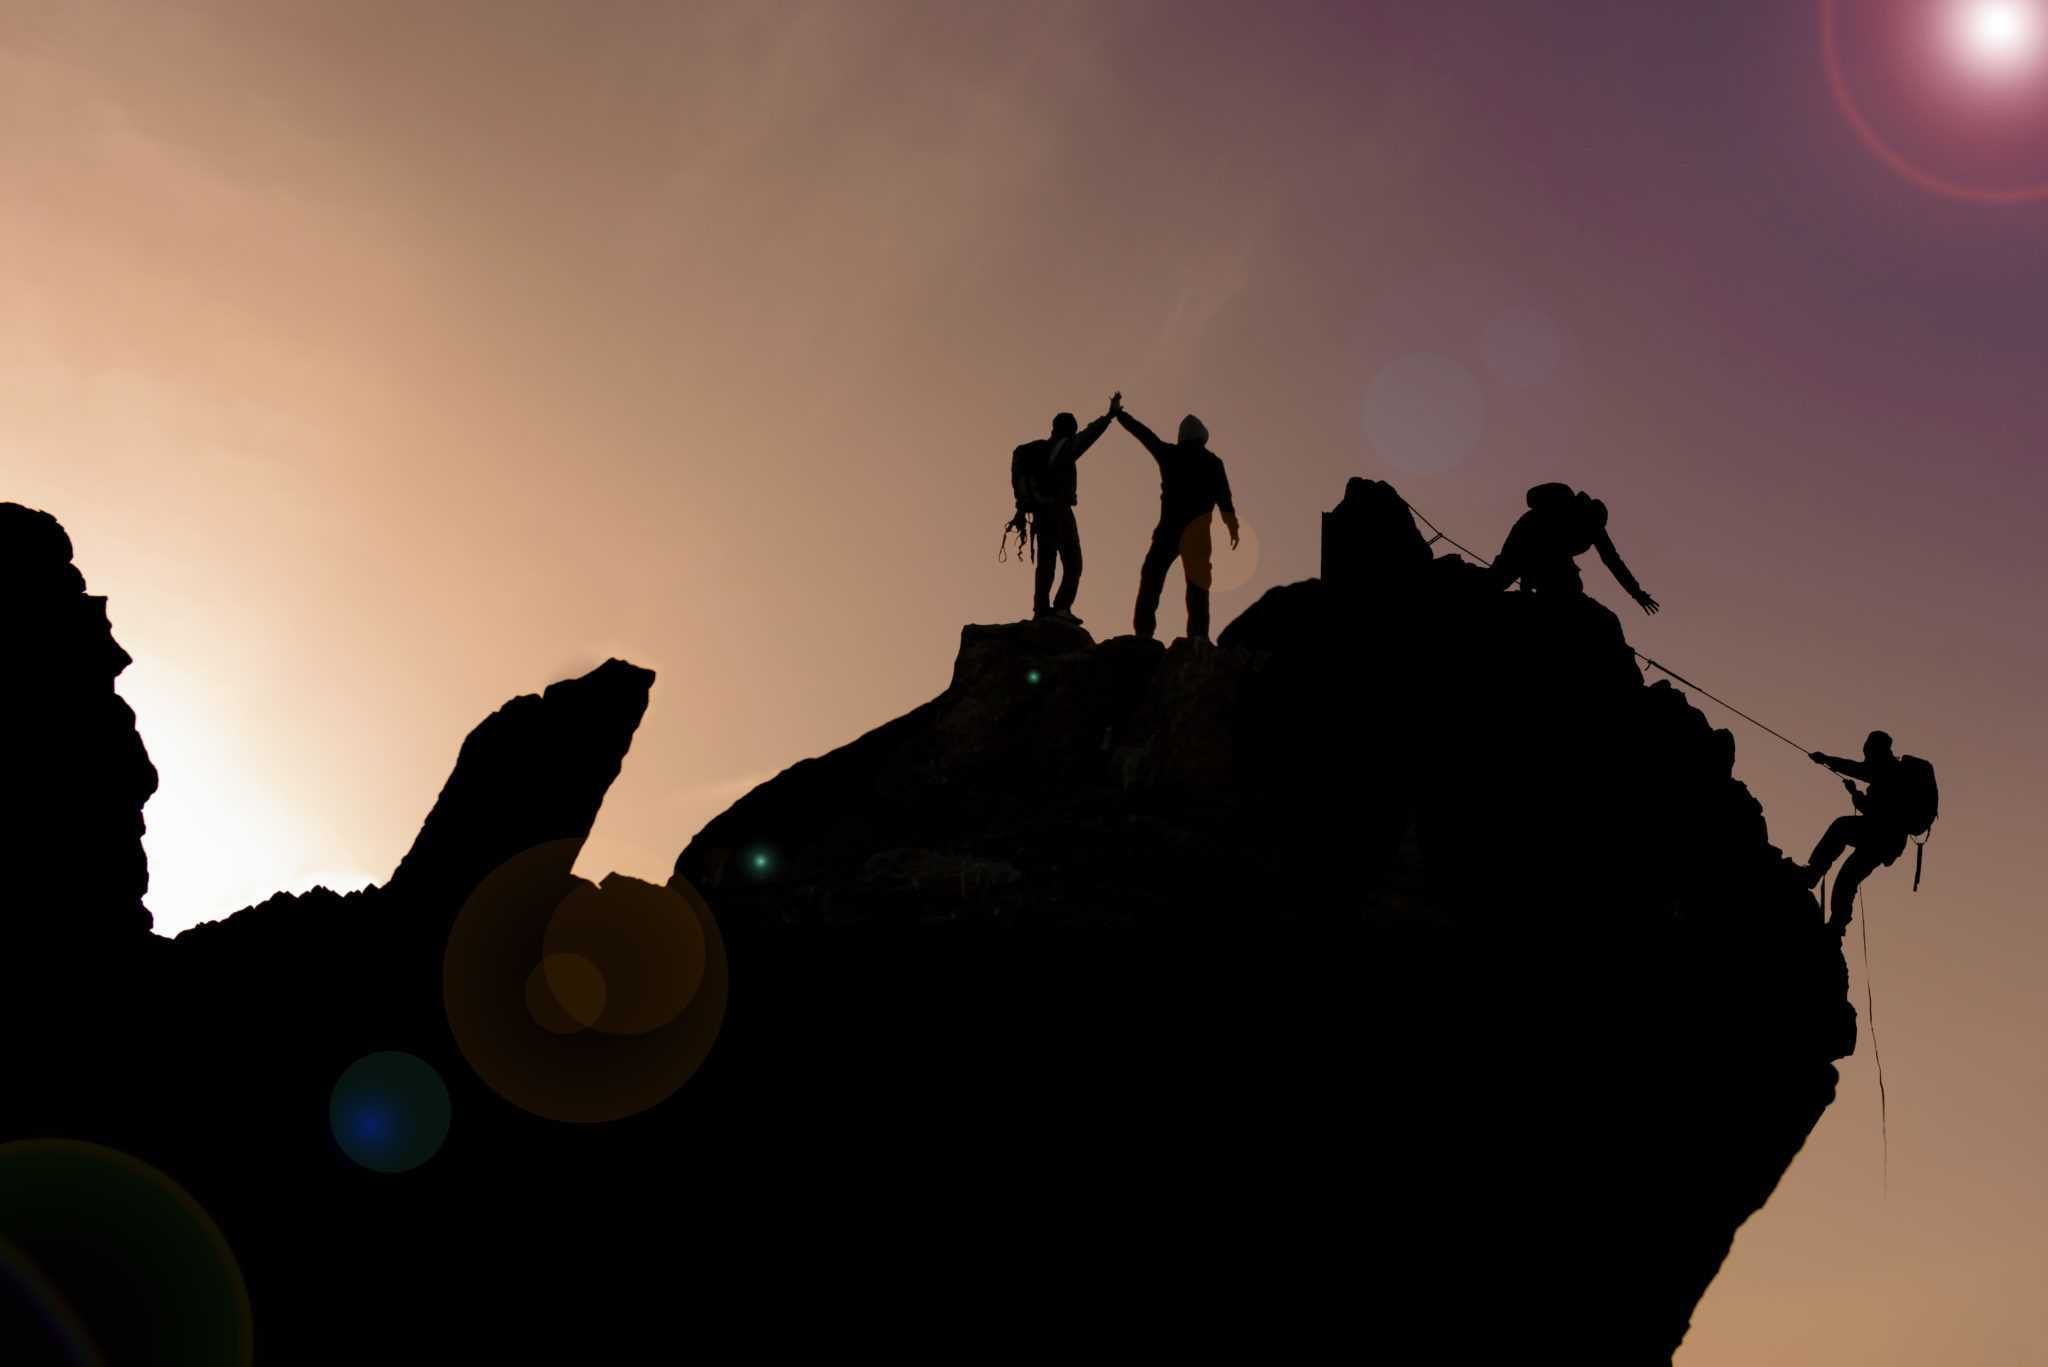 effective teams and the power of teamwork